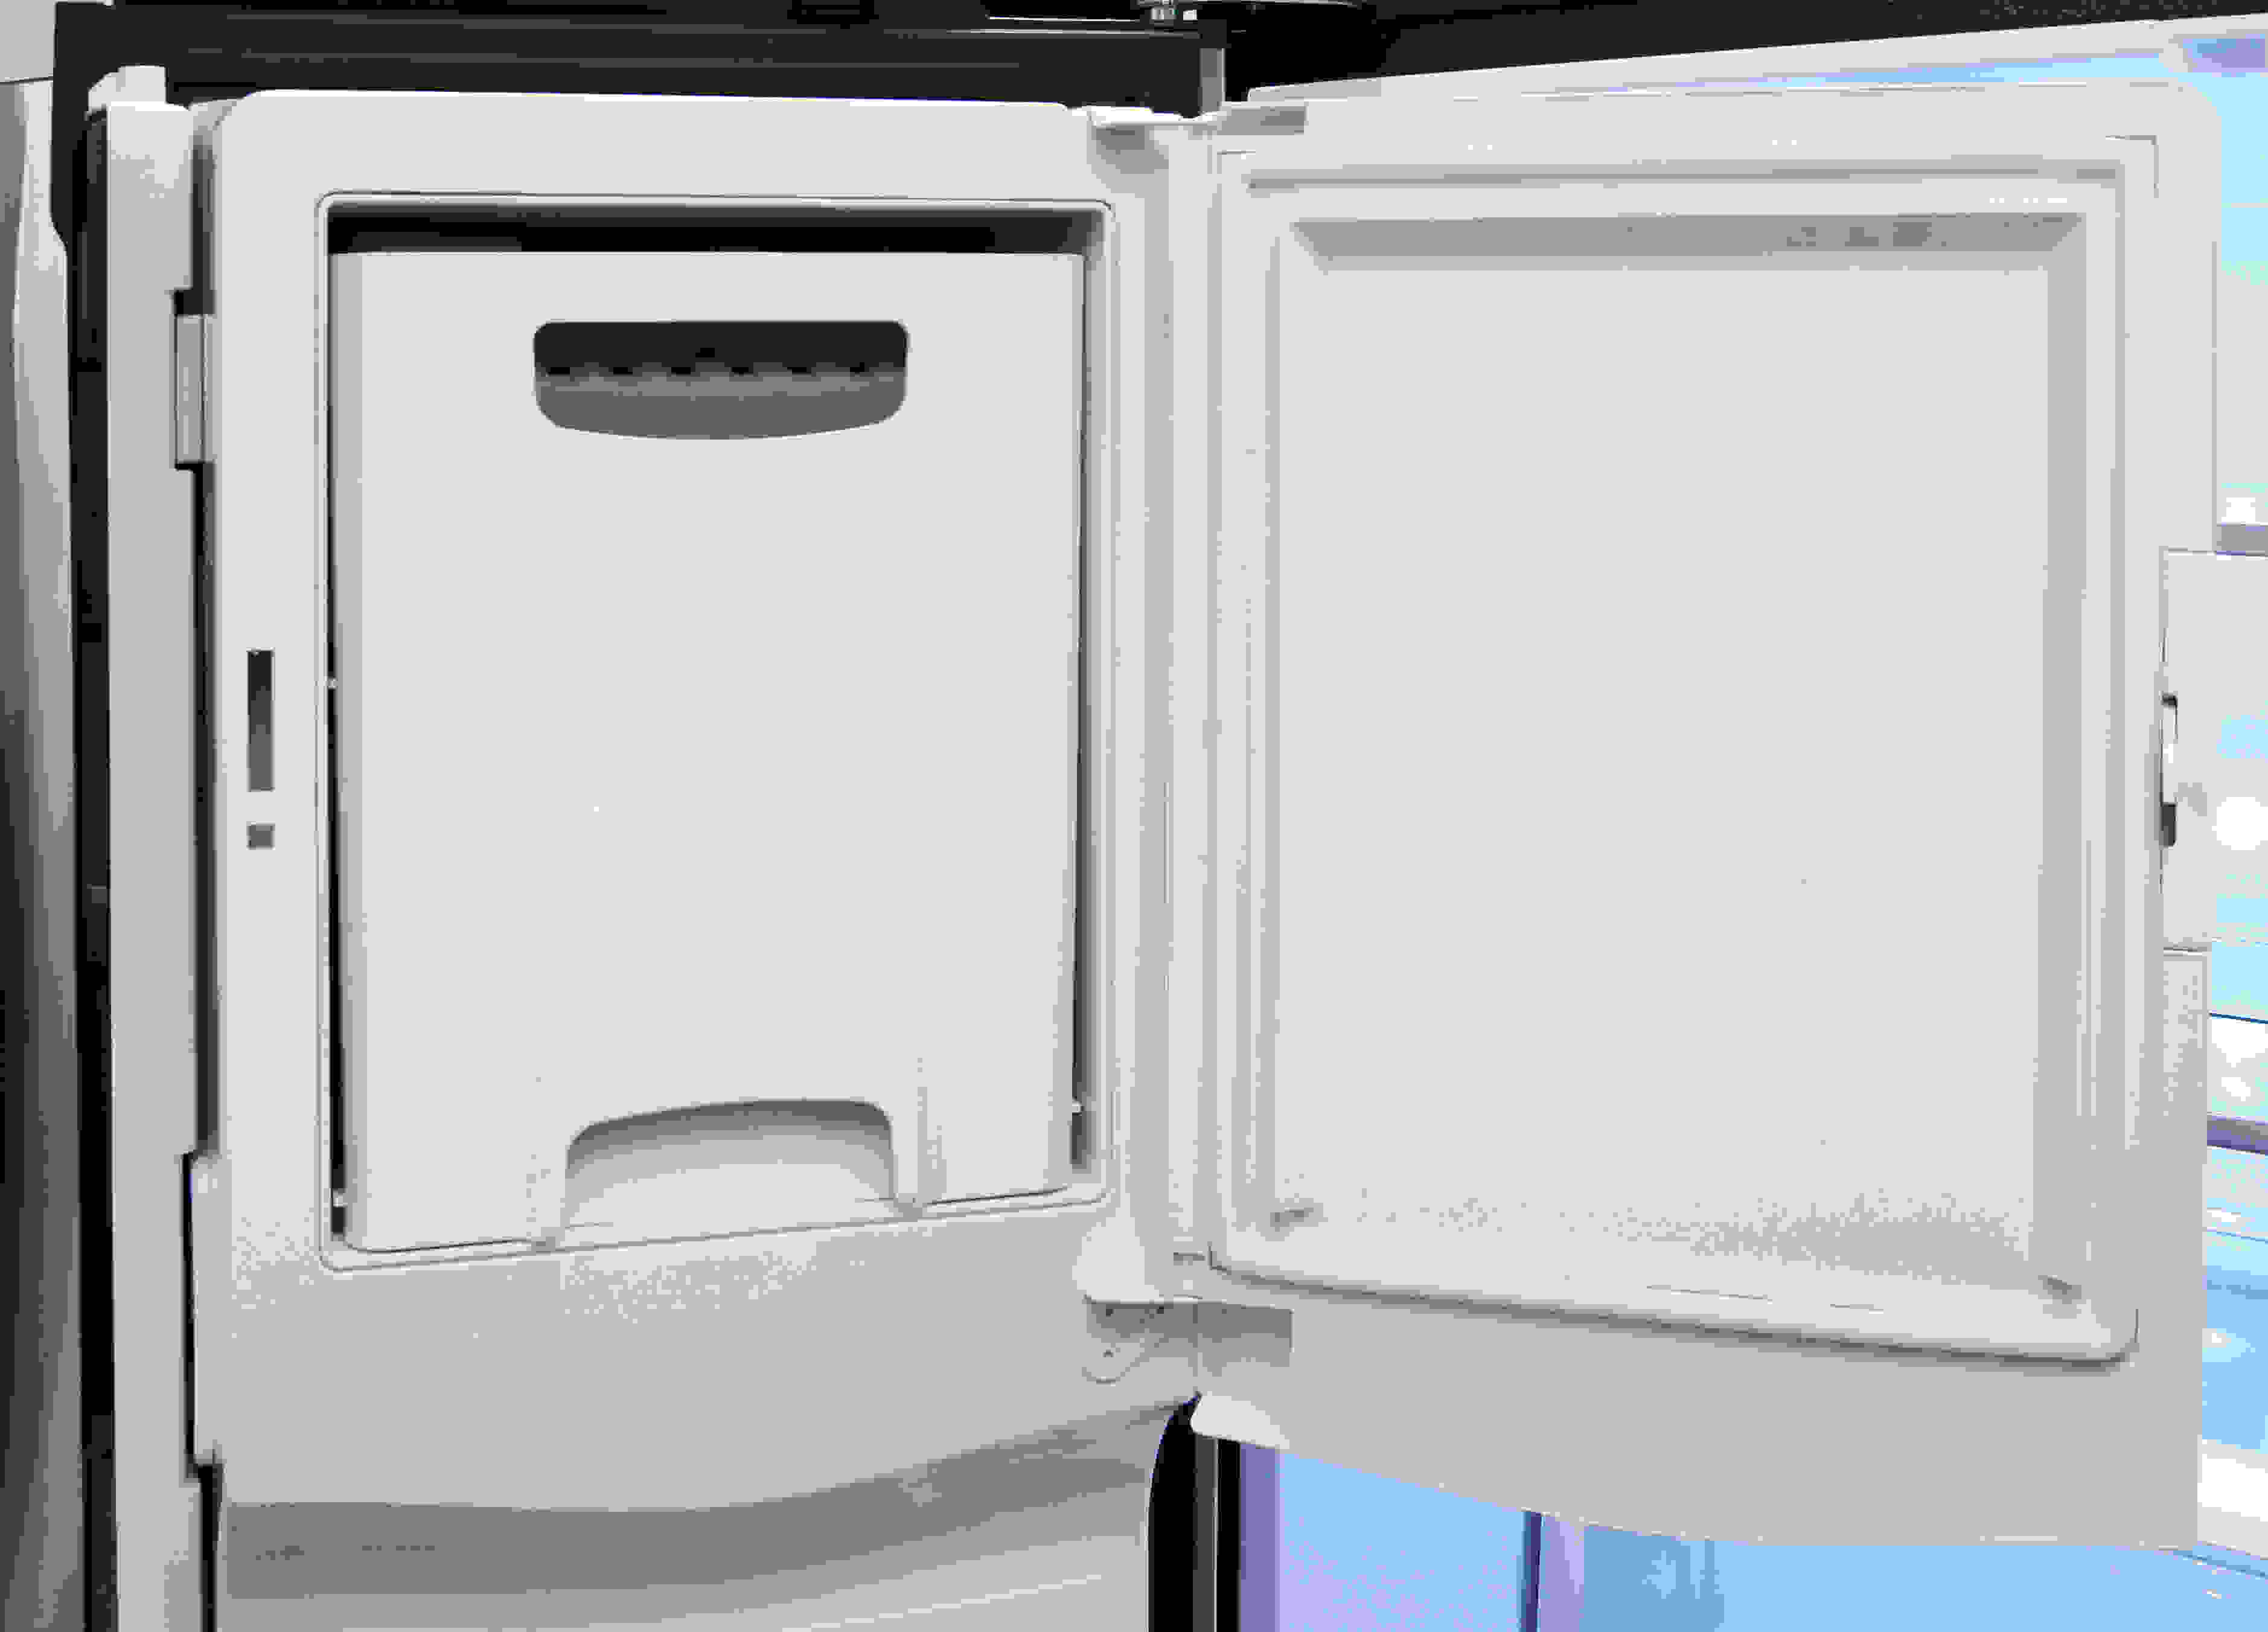 The GE Cafe CFE28TSHSS's tall, door-mounted icemaker is easy to access, and holds plenty of ice.